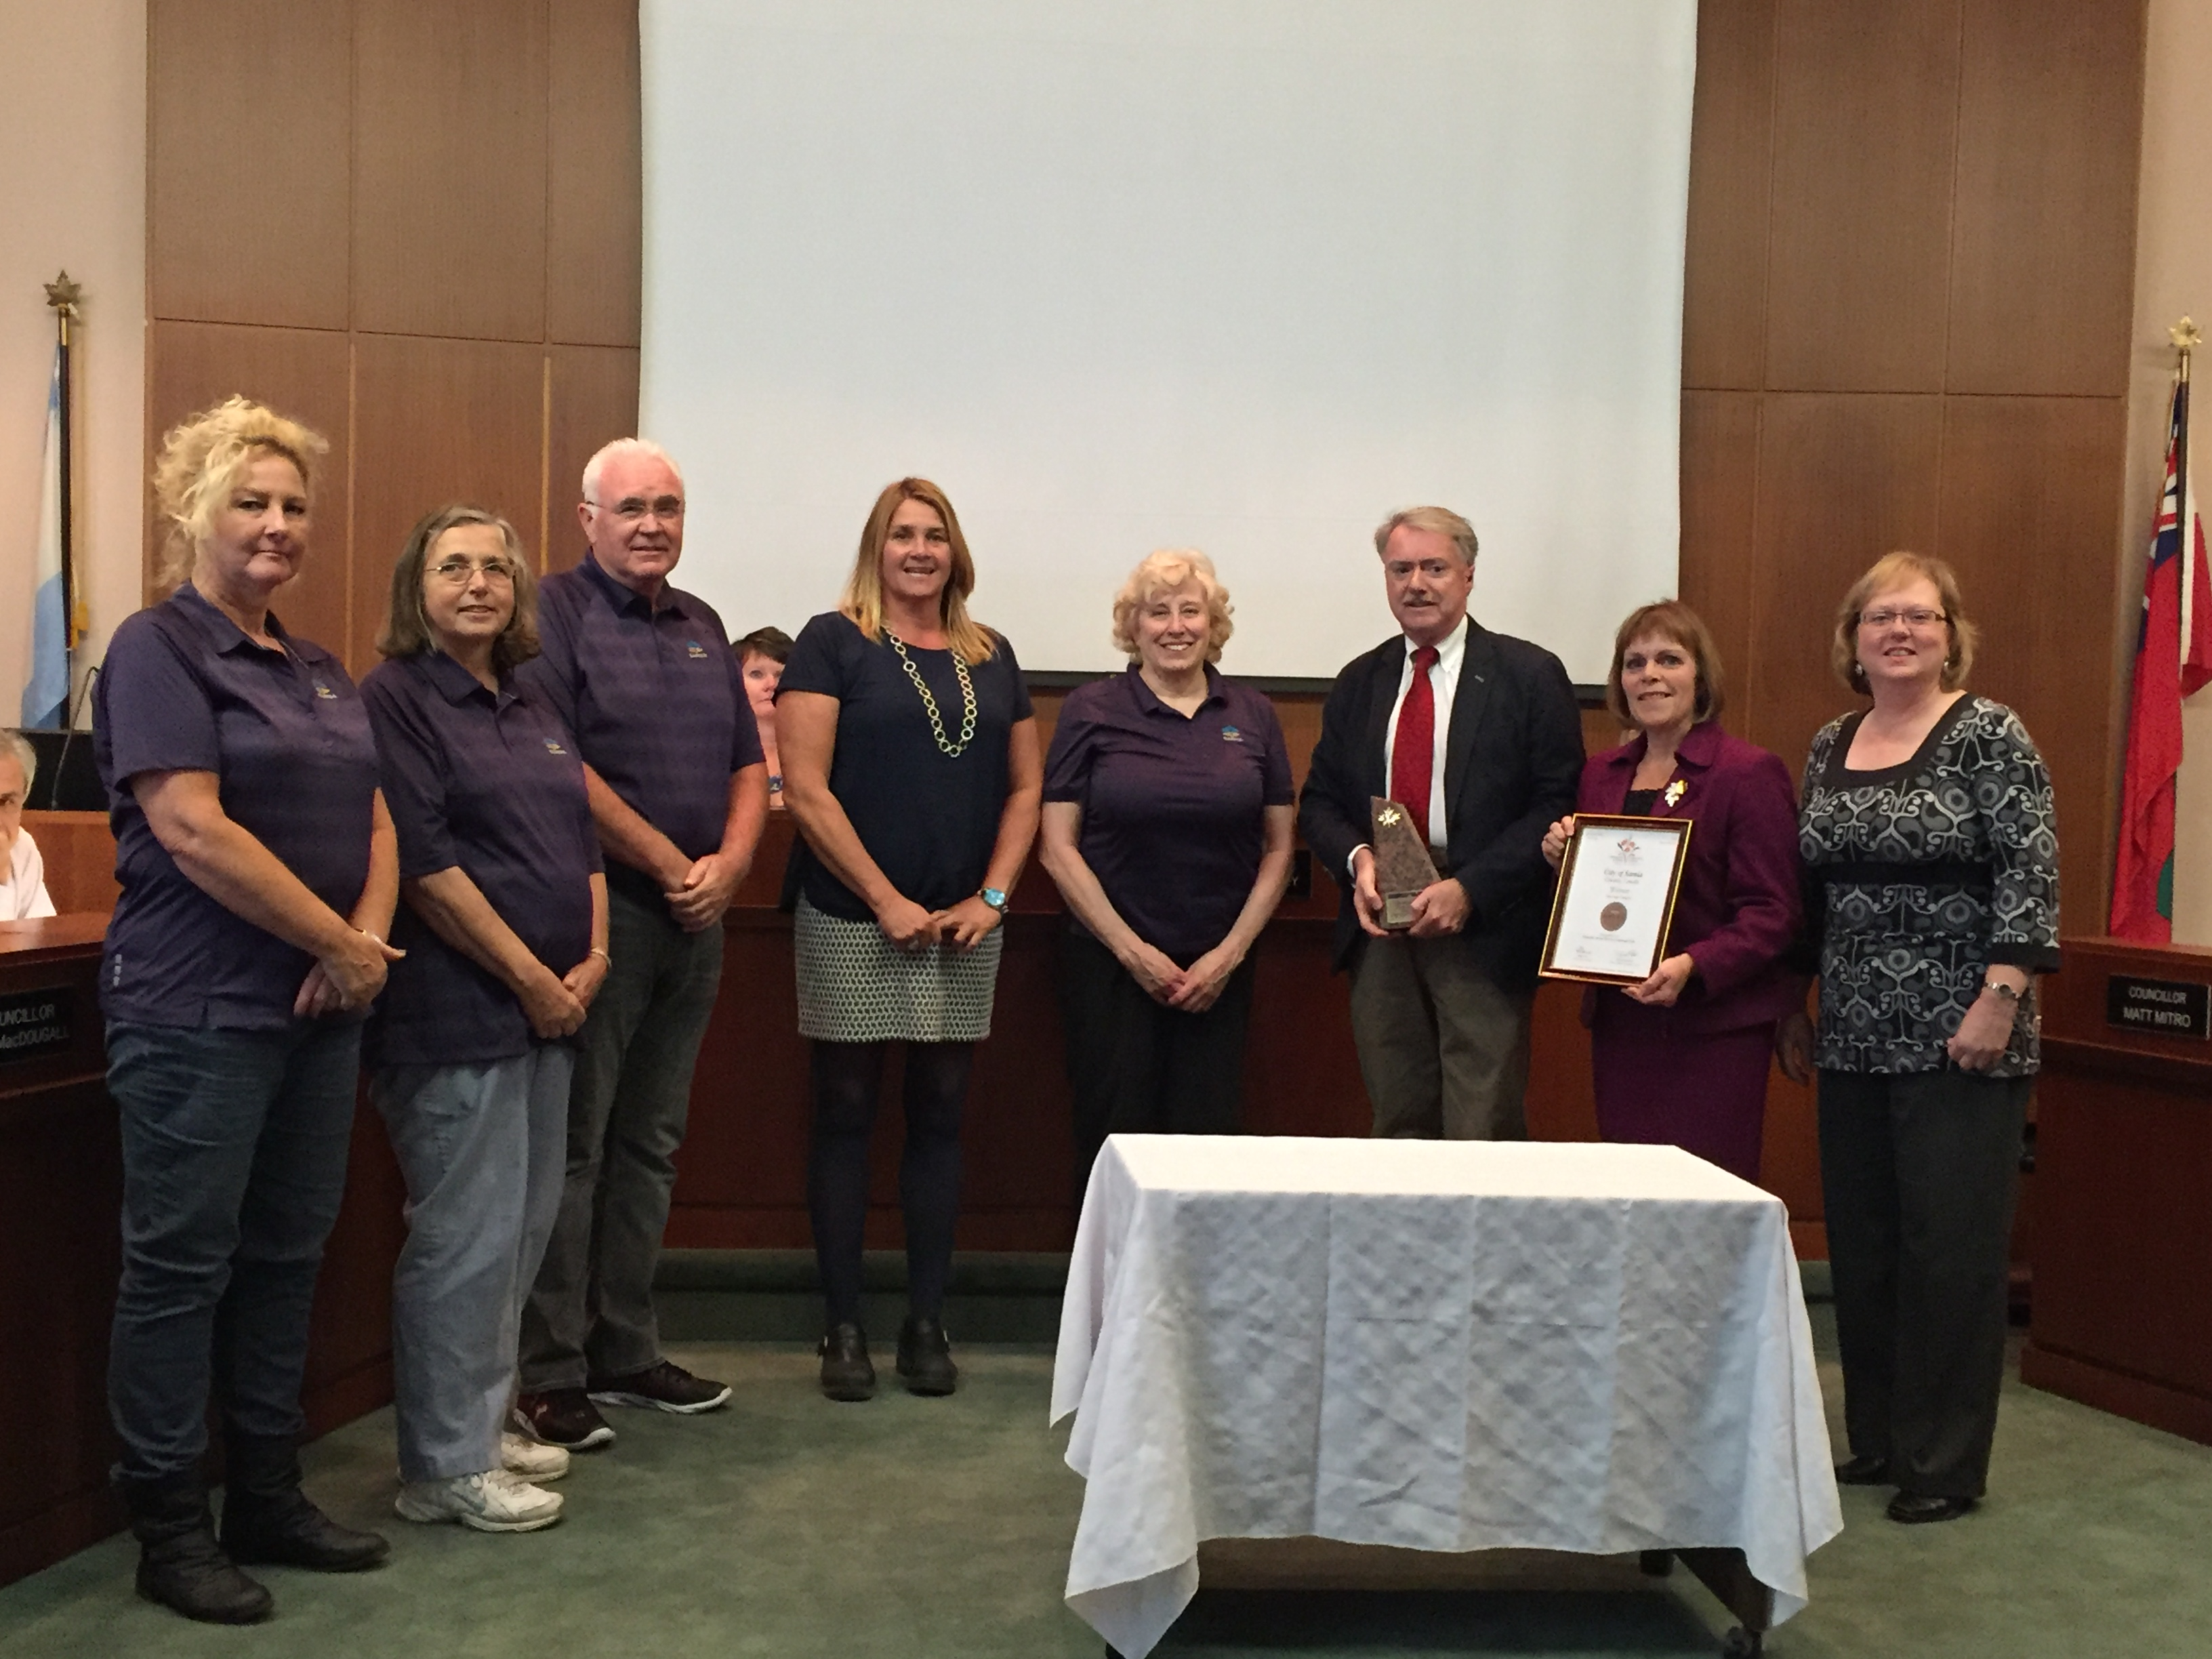 Sarnia's Communities In Bloom International Award is recognized at city hall Oct. 26, 2015 (BlackburnNews.com photo by Briana Carnegie)